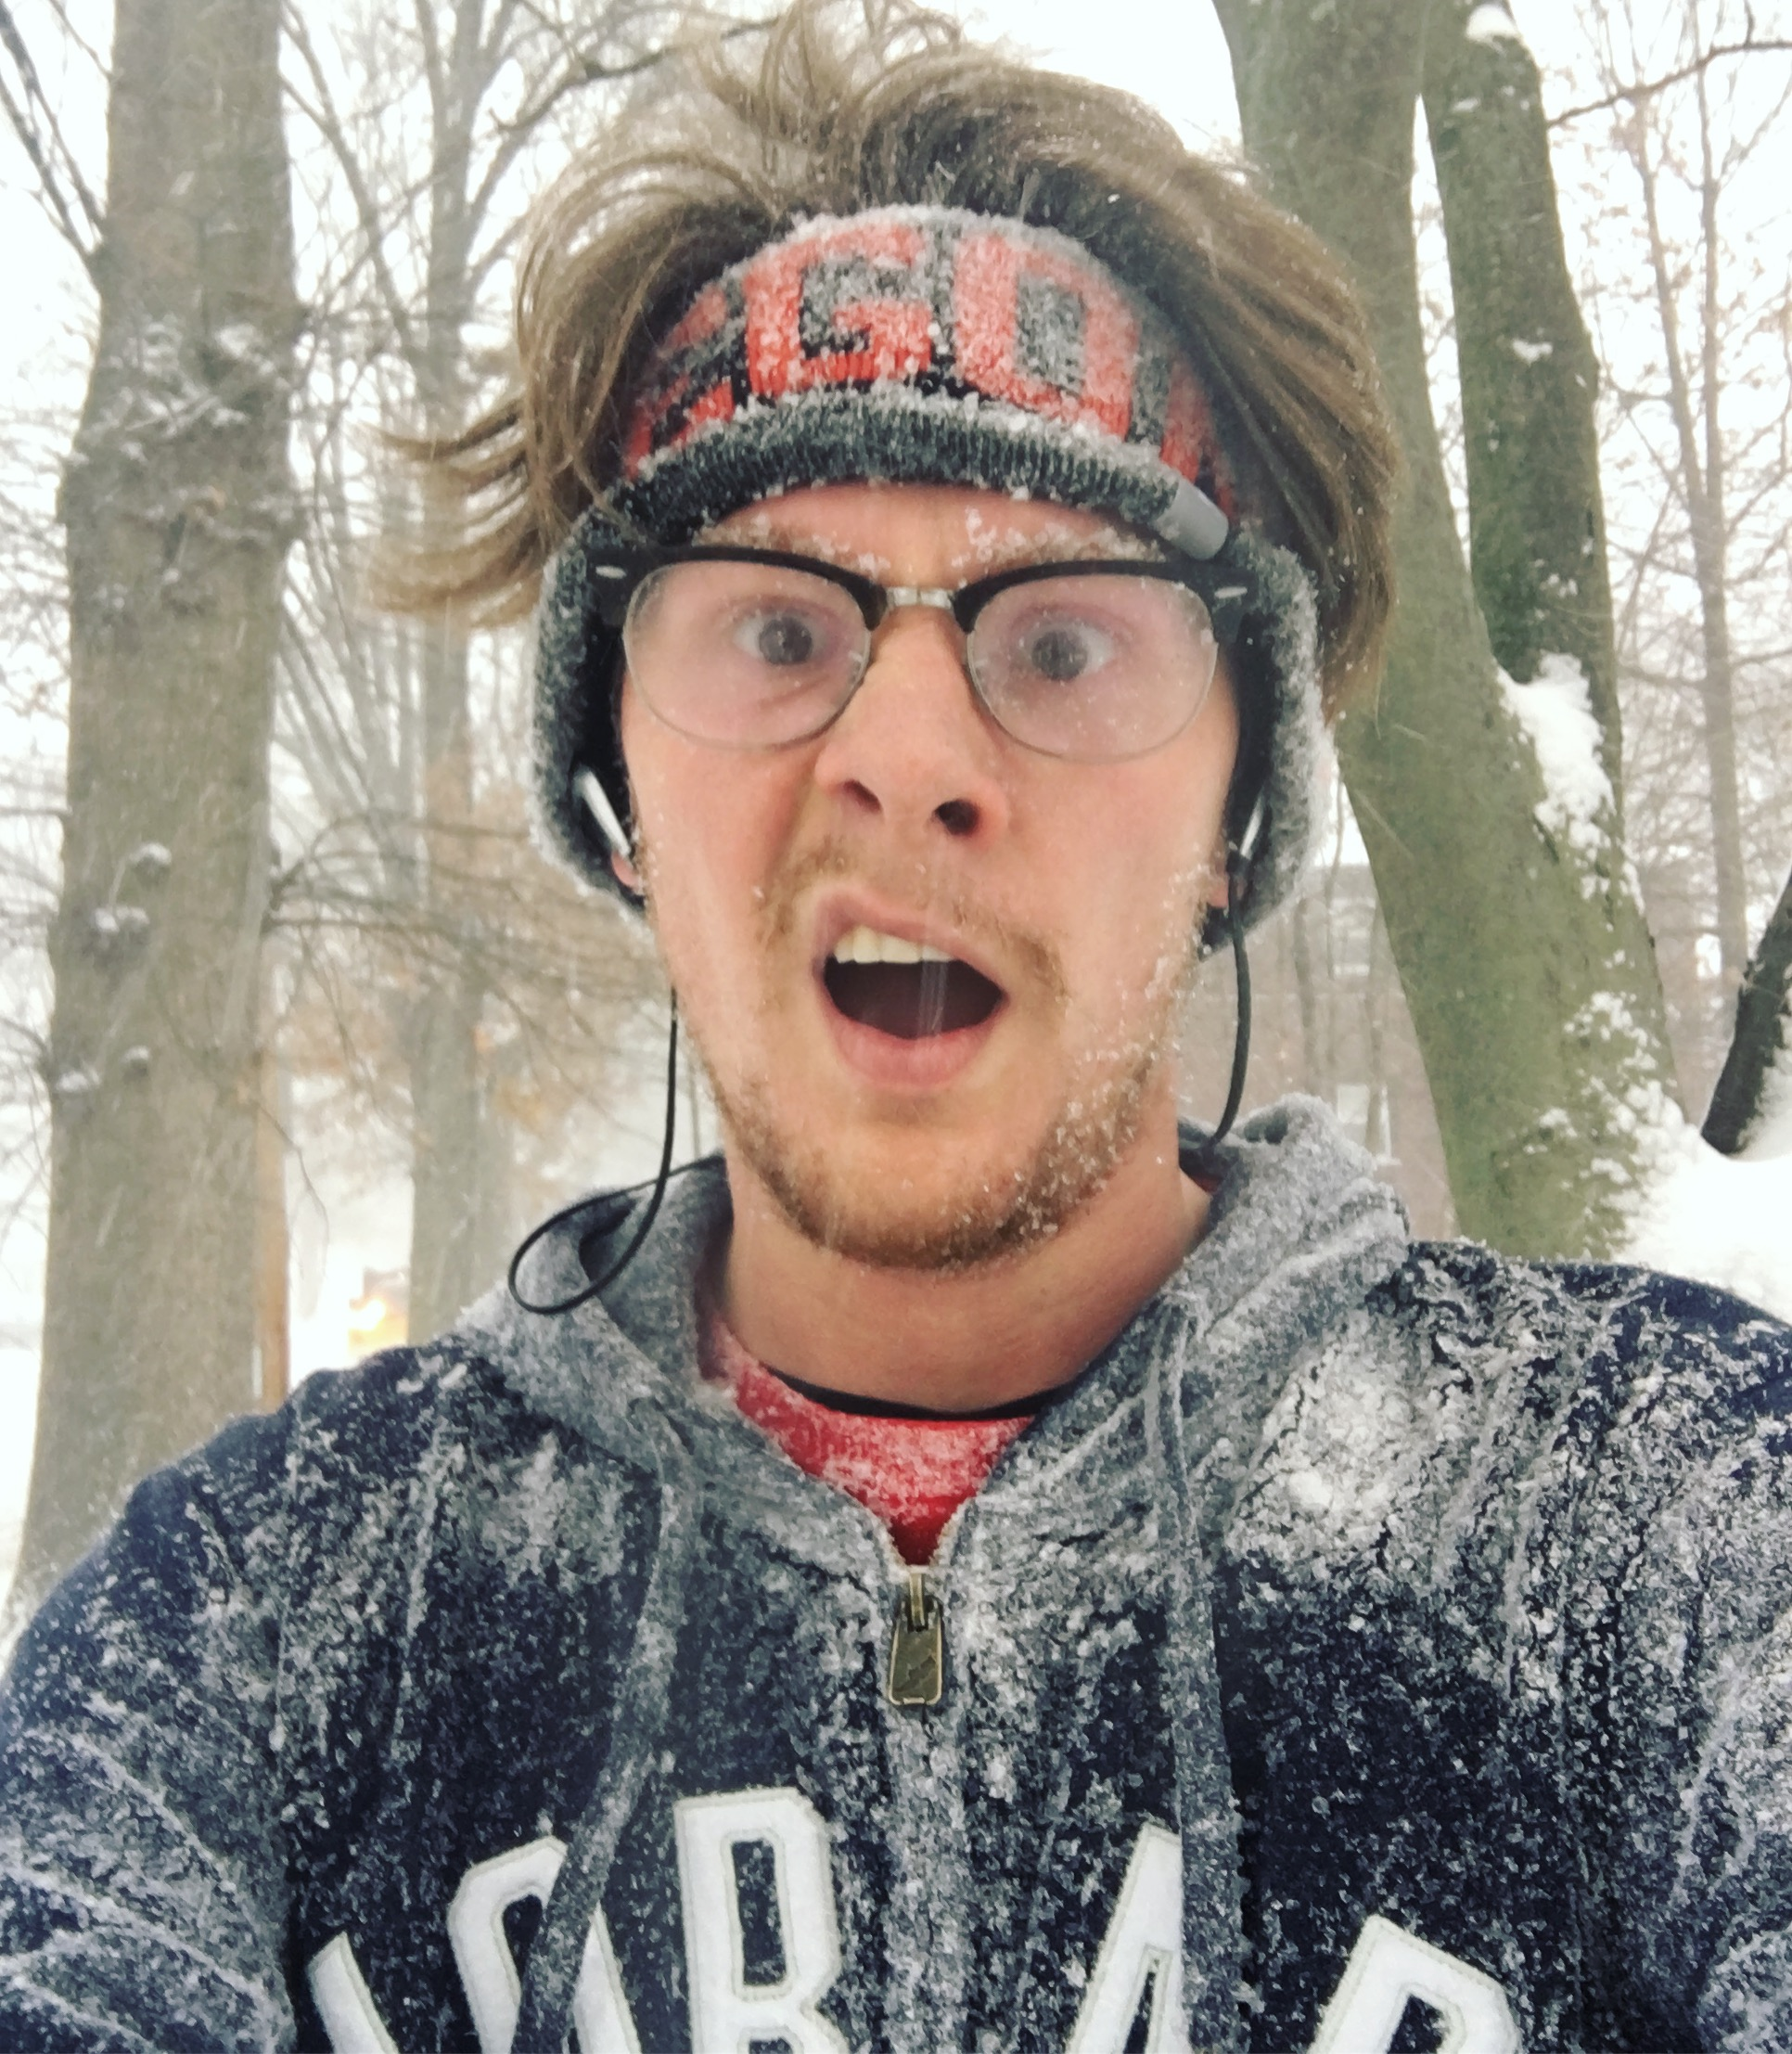 I recently ran a half marathon in a snow storm. Very fun, but very stupid.